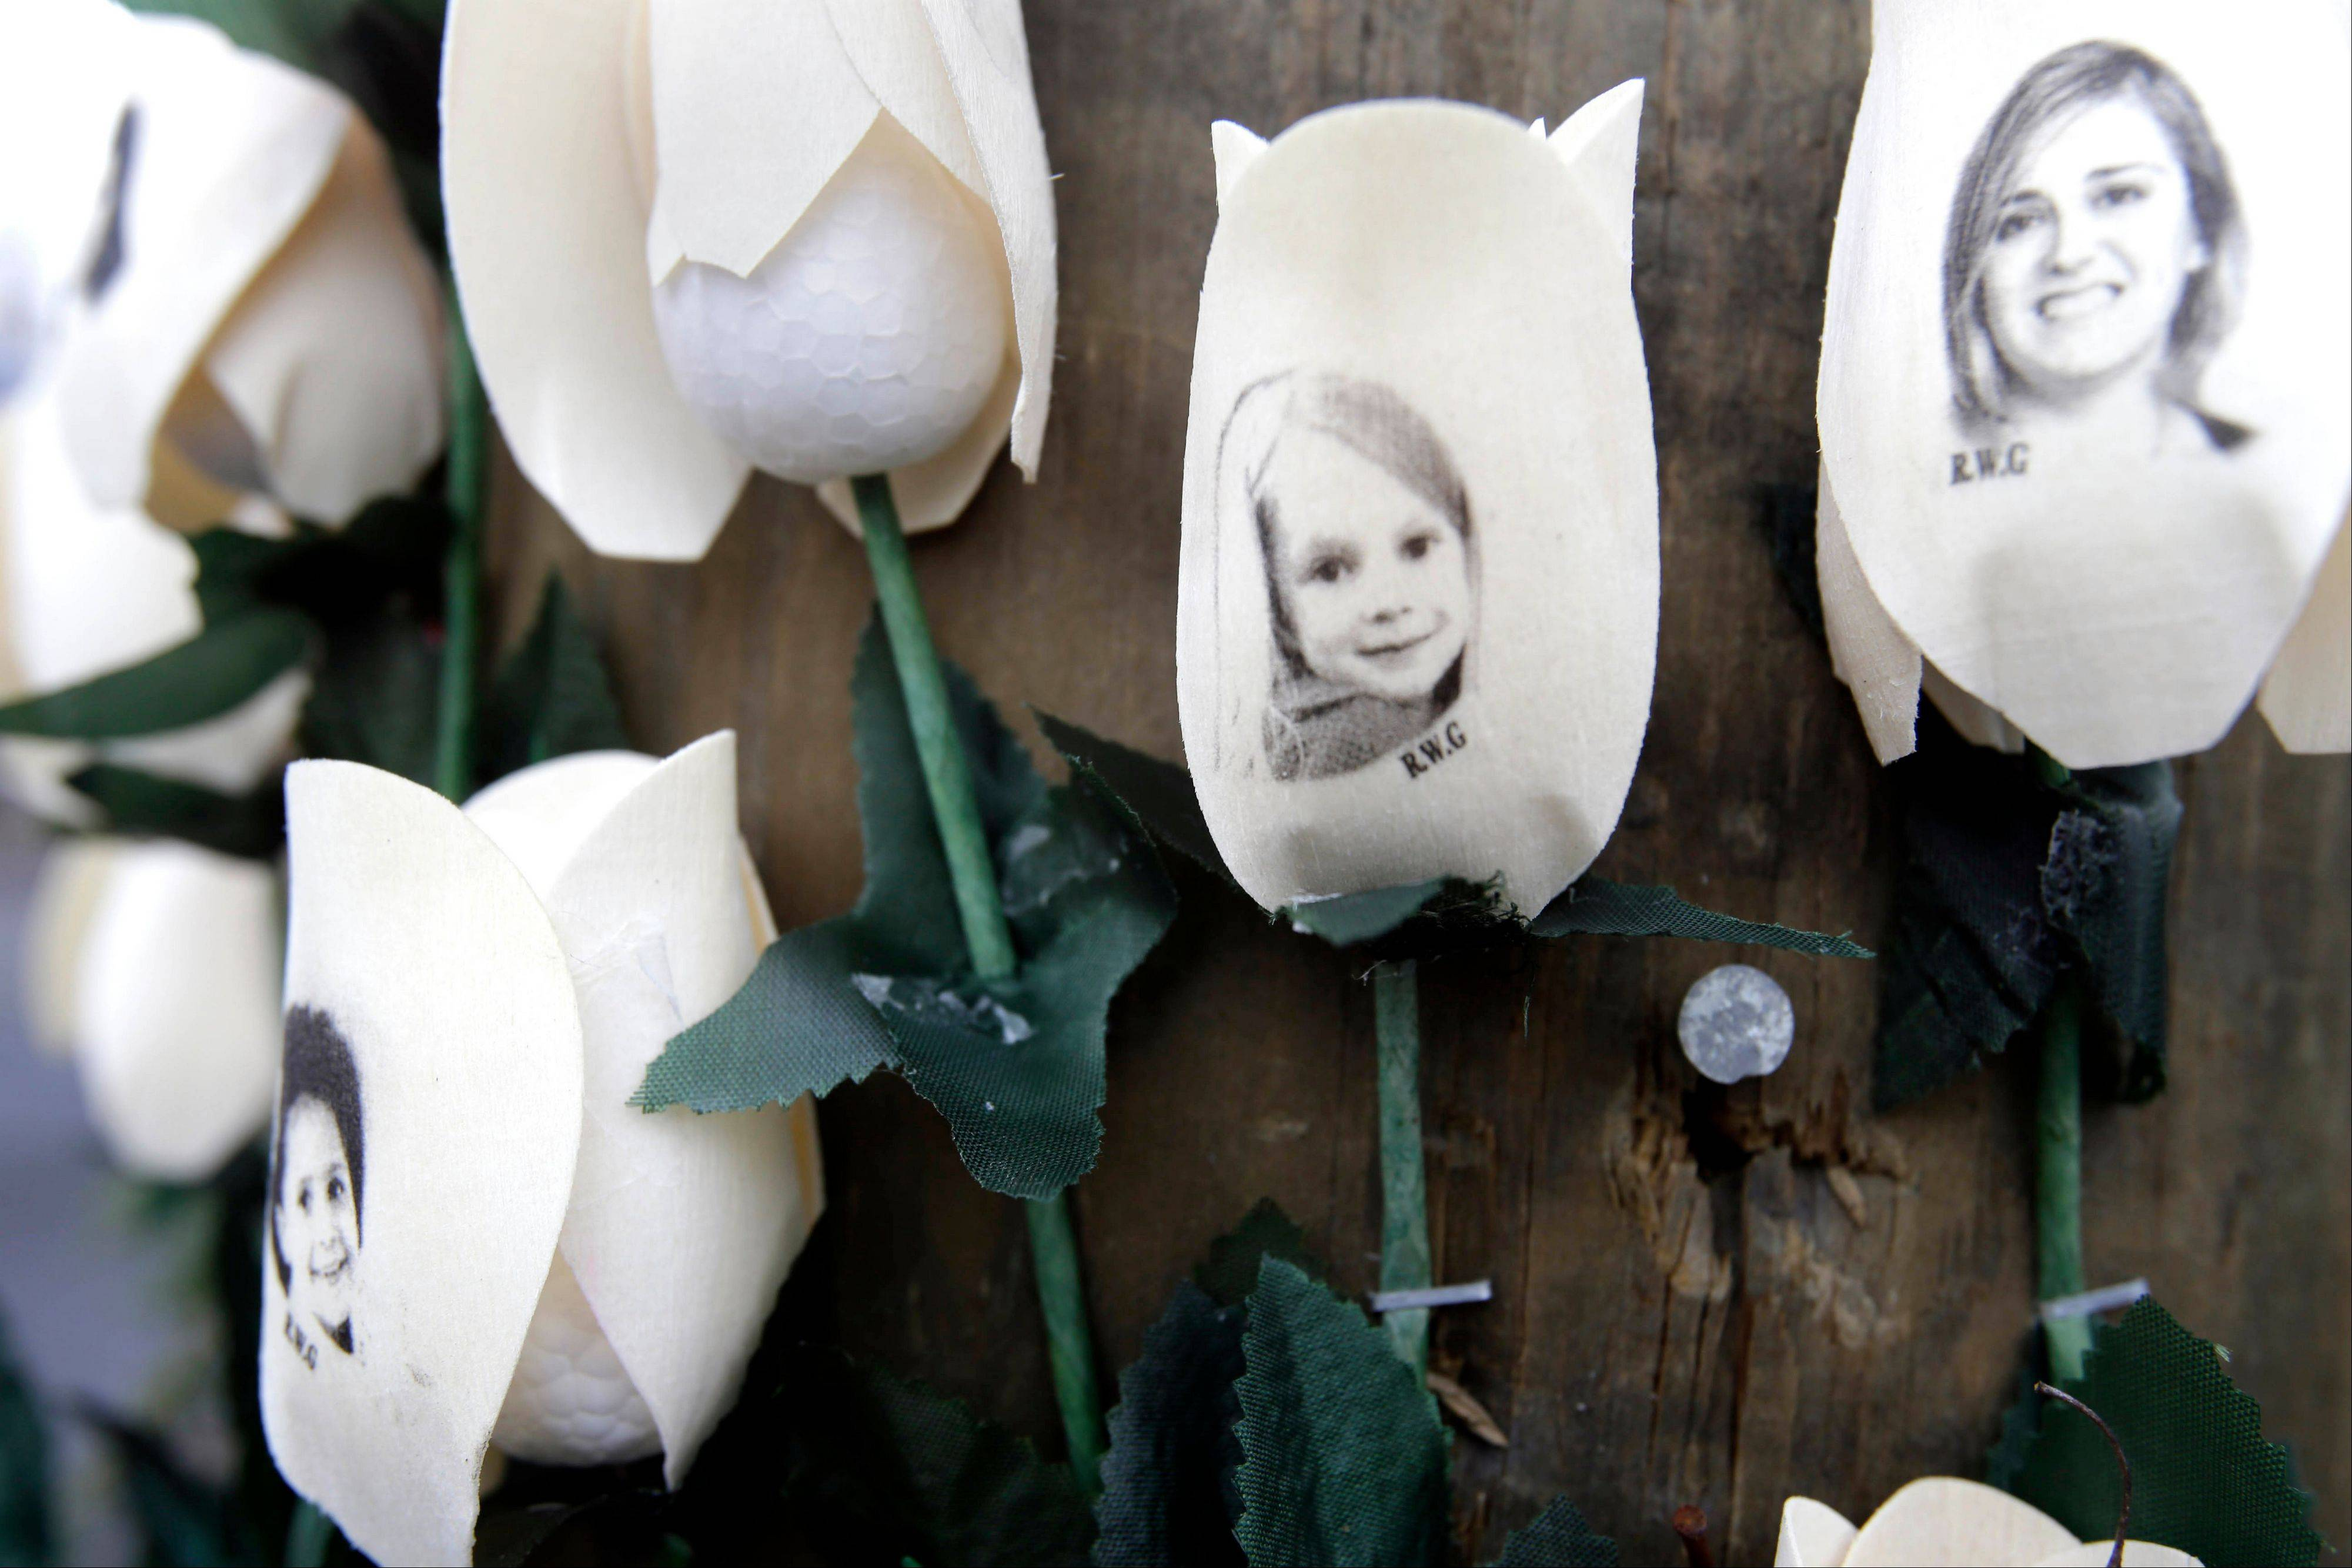 Photos showing victims in the shootings at Sandy Hook Elementary School are imprinted on fake roses at a memorial Saturday in the Sandy Hook village of Newtown, Conn.